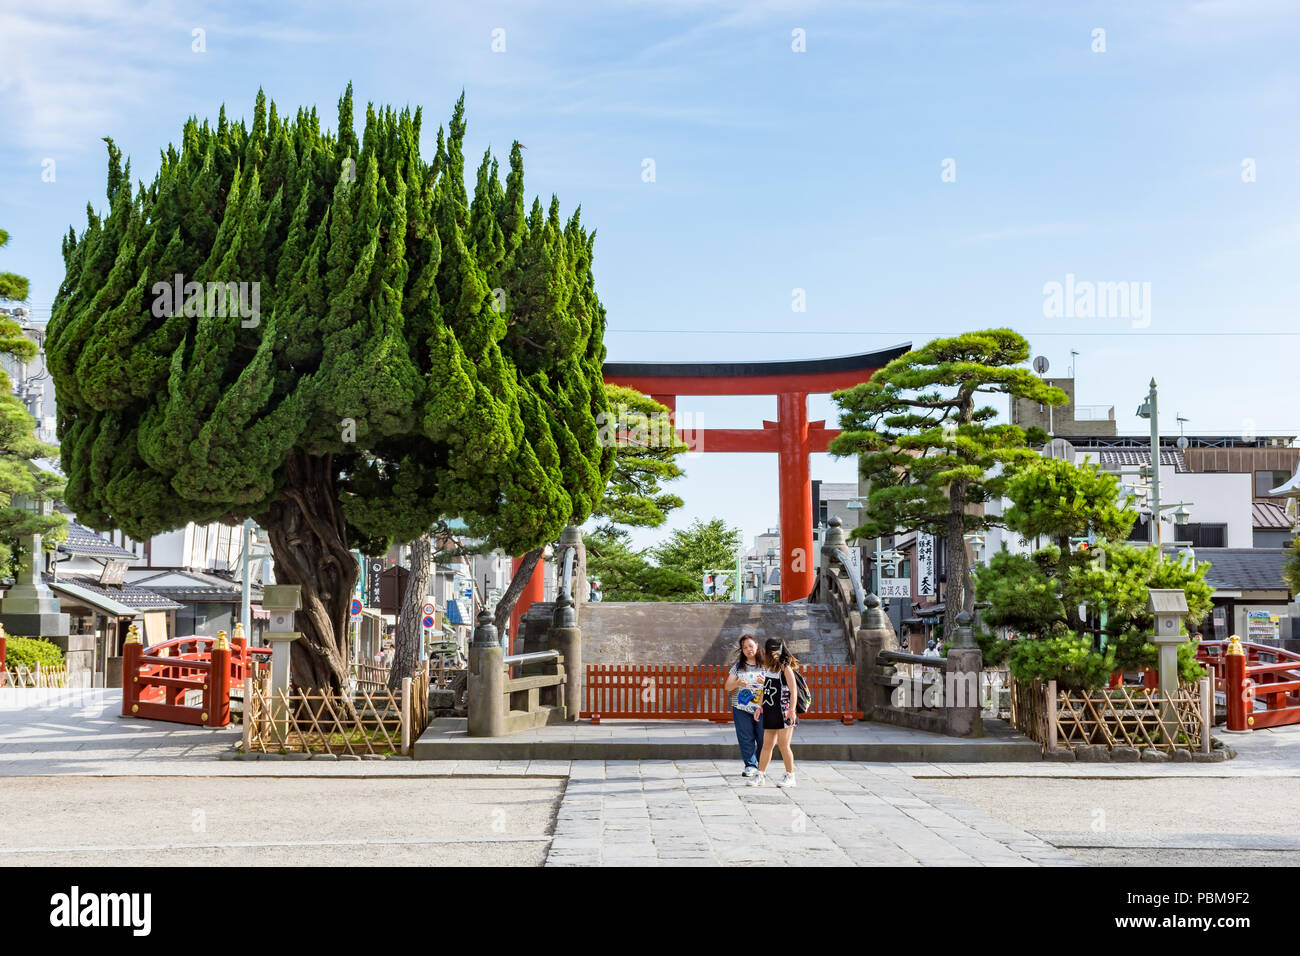 Two Japanese girls at the gates of the Hase-dera Buddhist Temple, Kamakura near Tokyo, Japan. A large green tree with branches growing upwards. - Stock Image